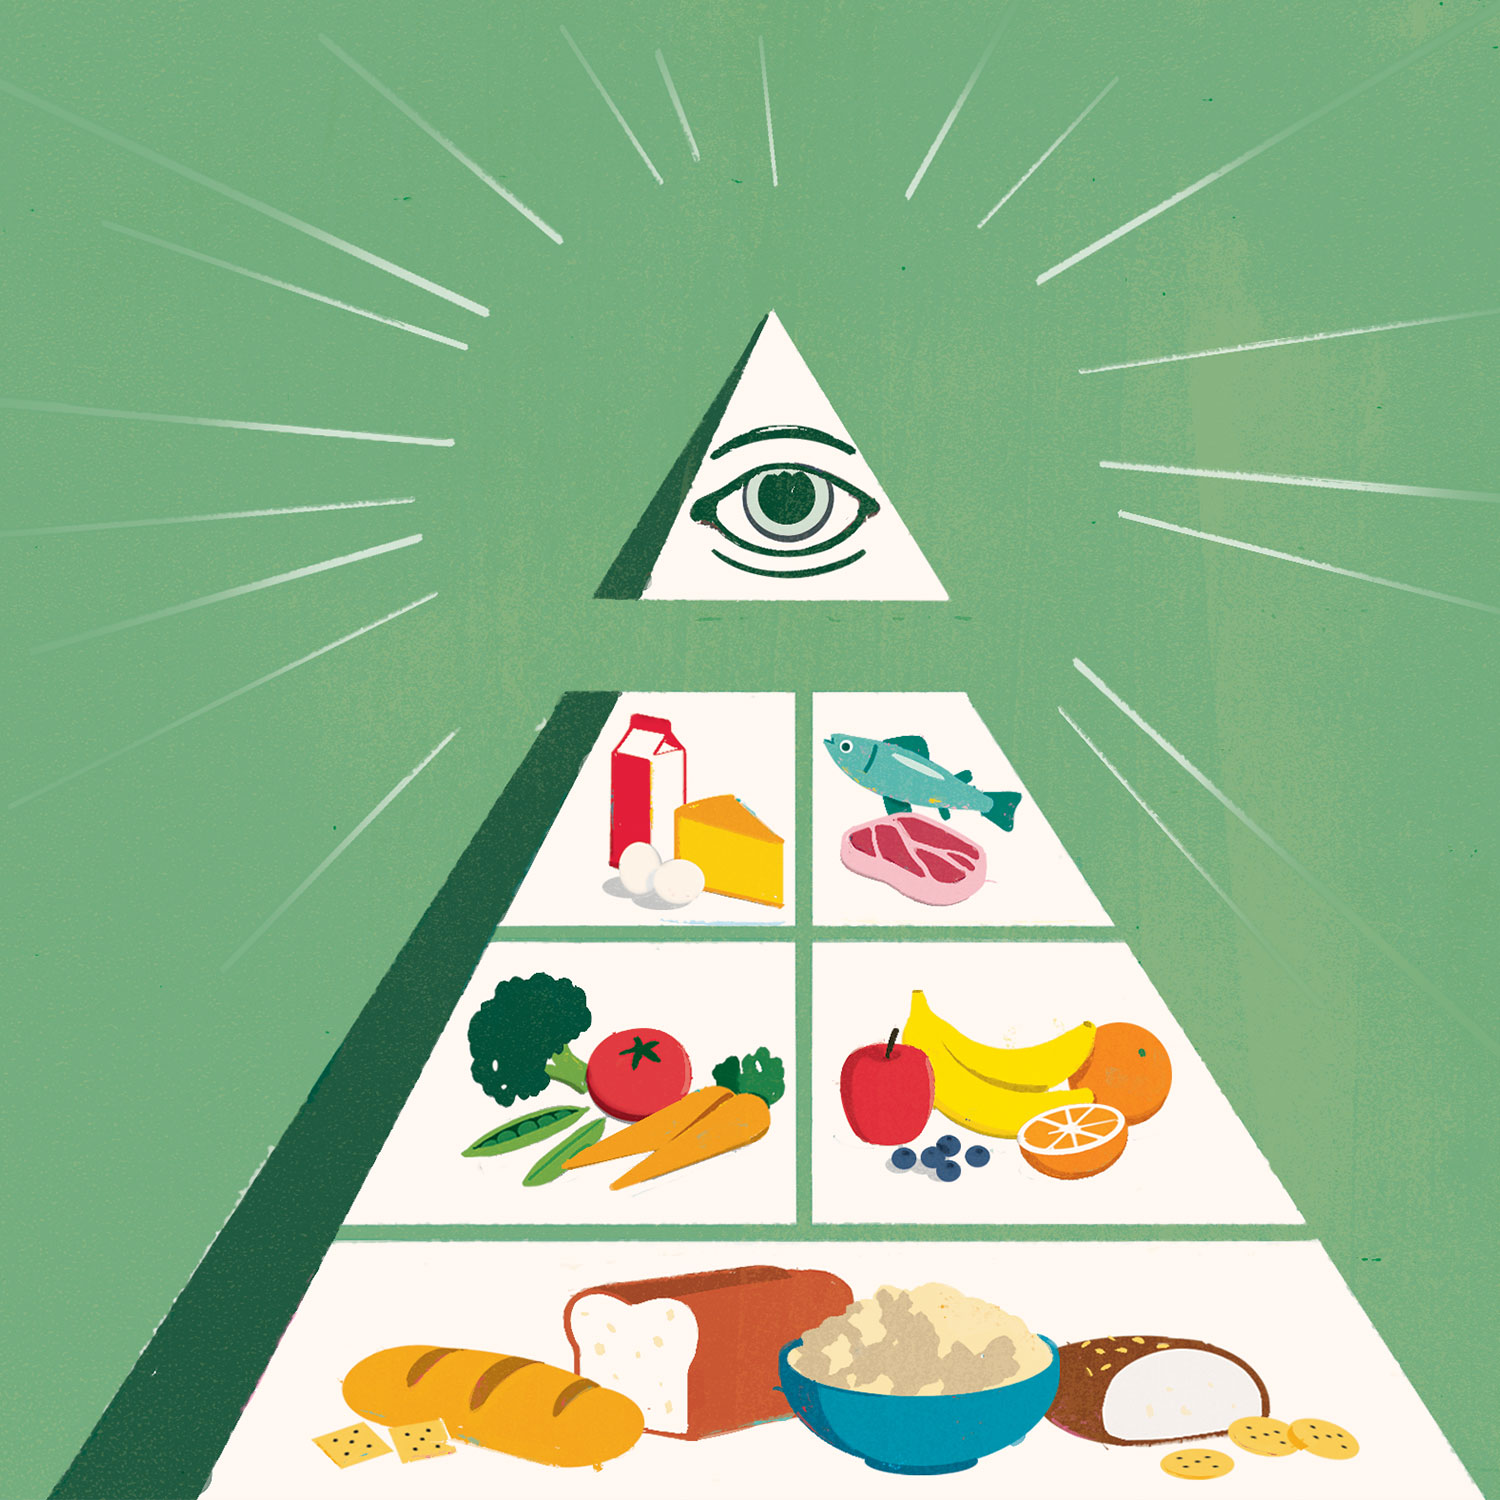 Food Pyramid Illustration